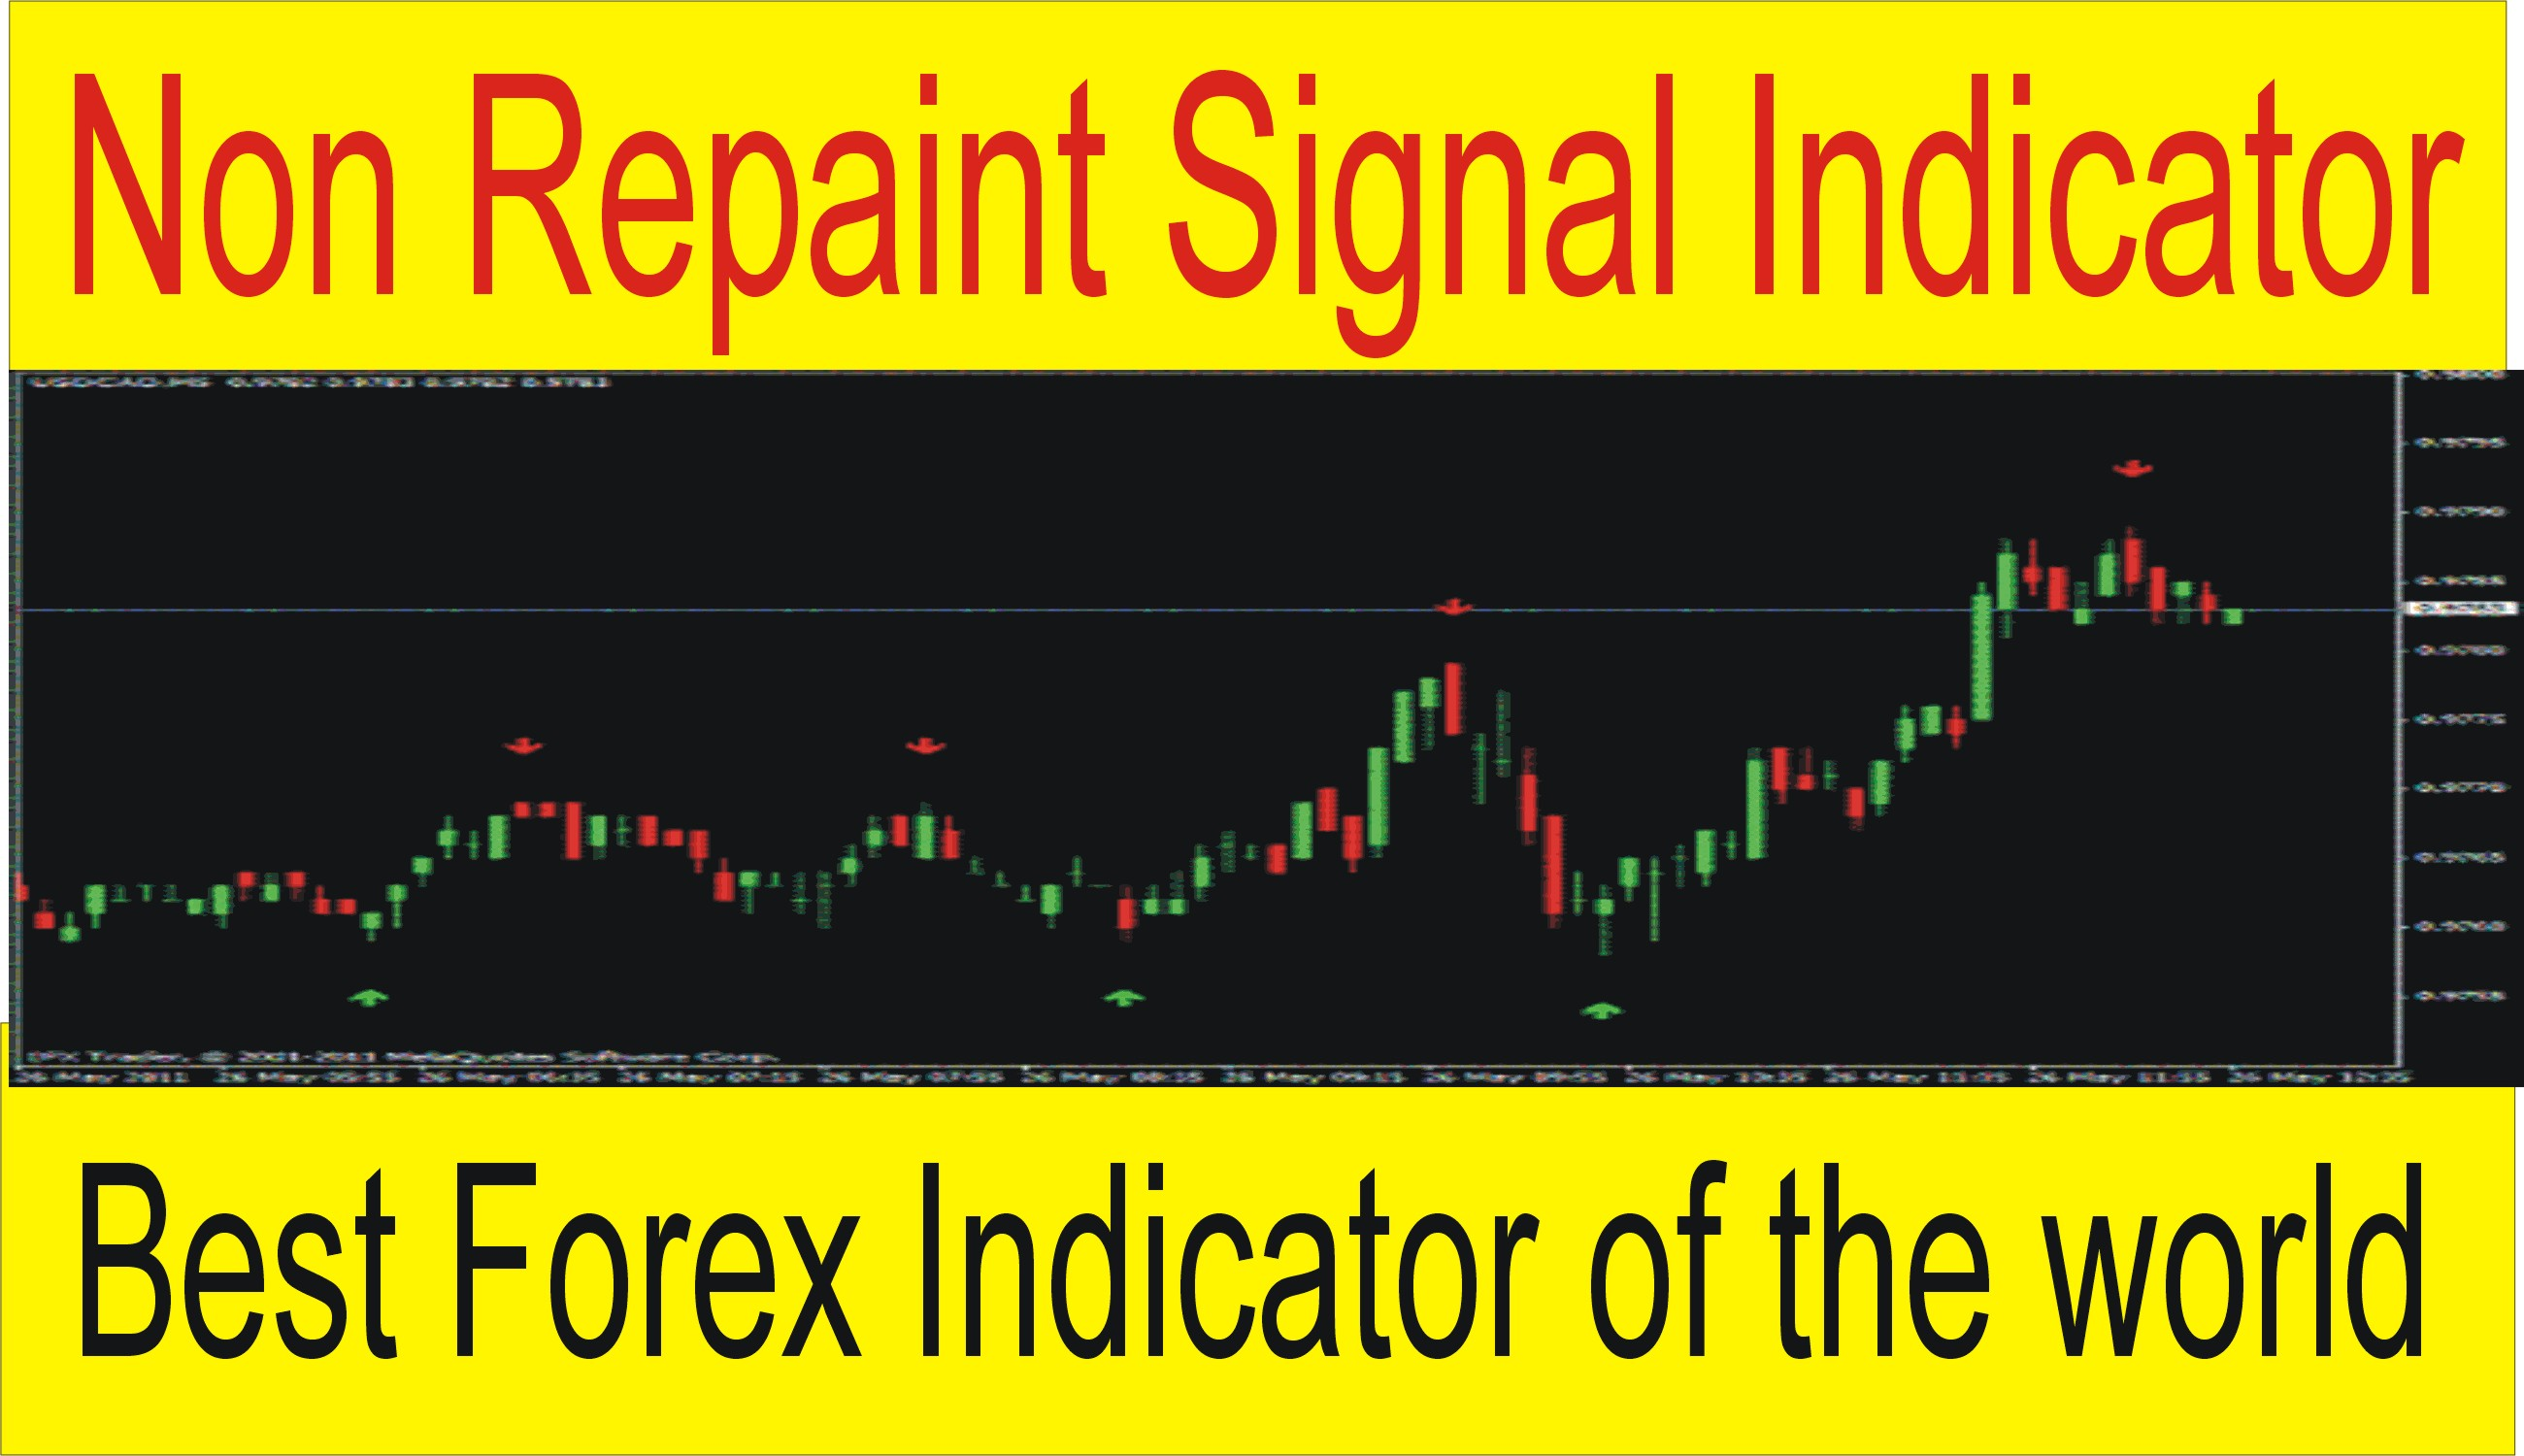 Non Repaint Best Forex Trading Indicator Of The World - Tani